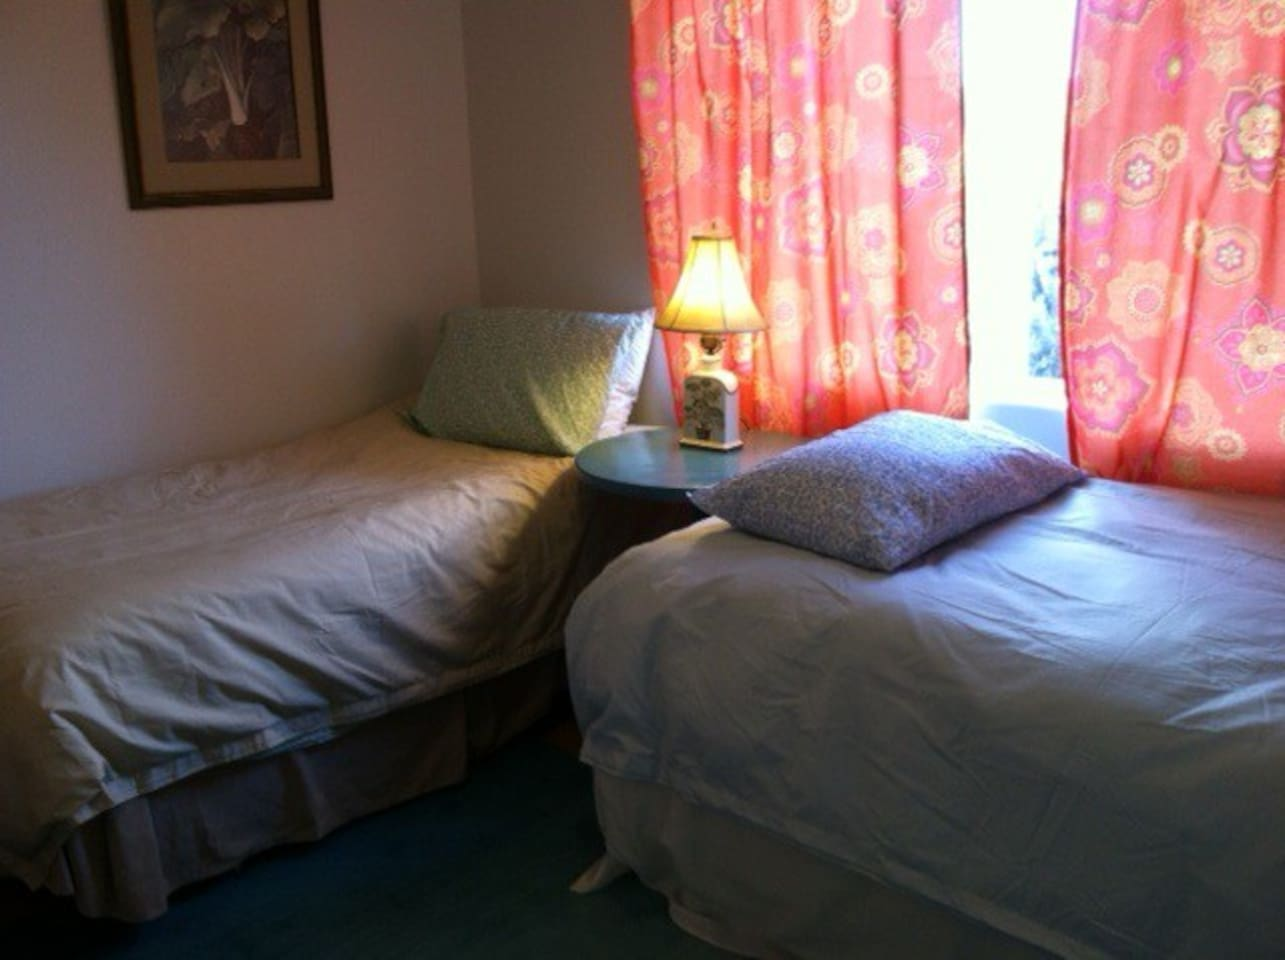 Clean, comfortable guest room - perfect for one or two travelers.